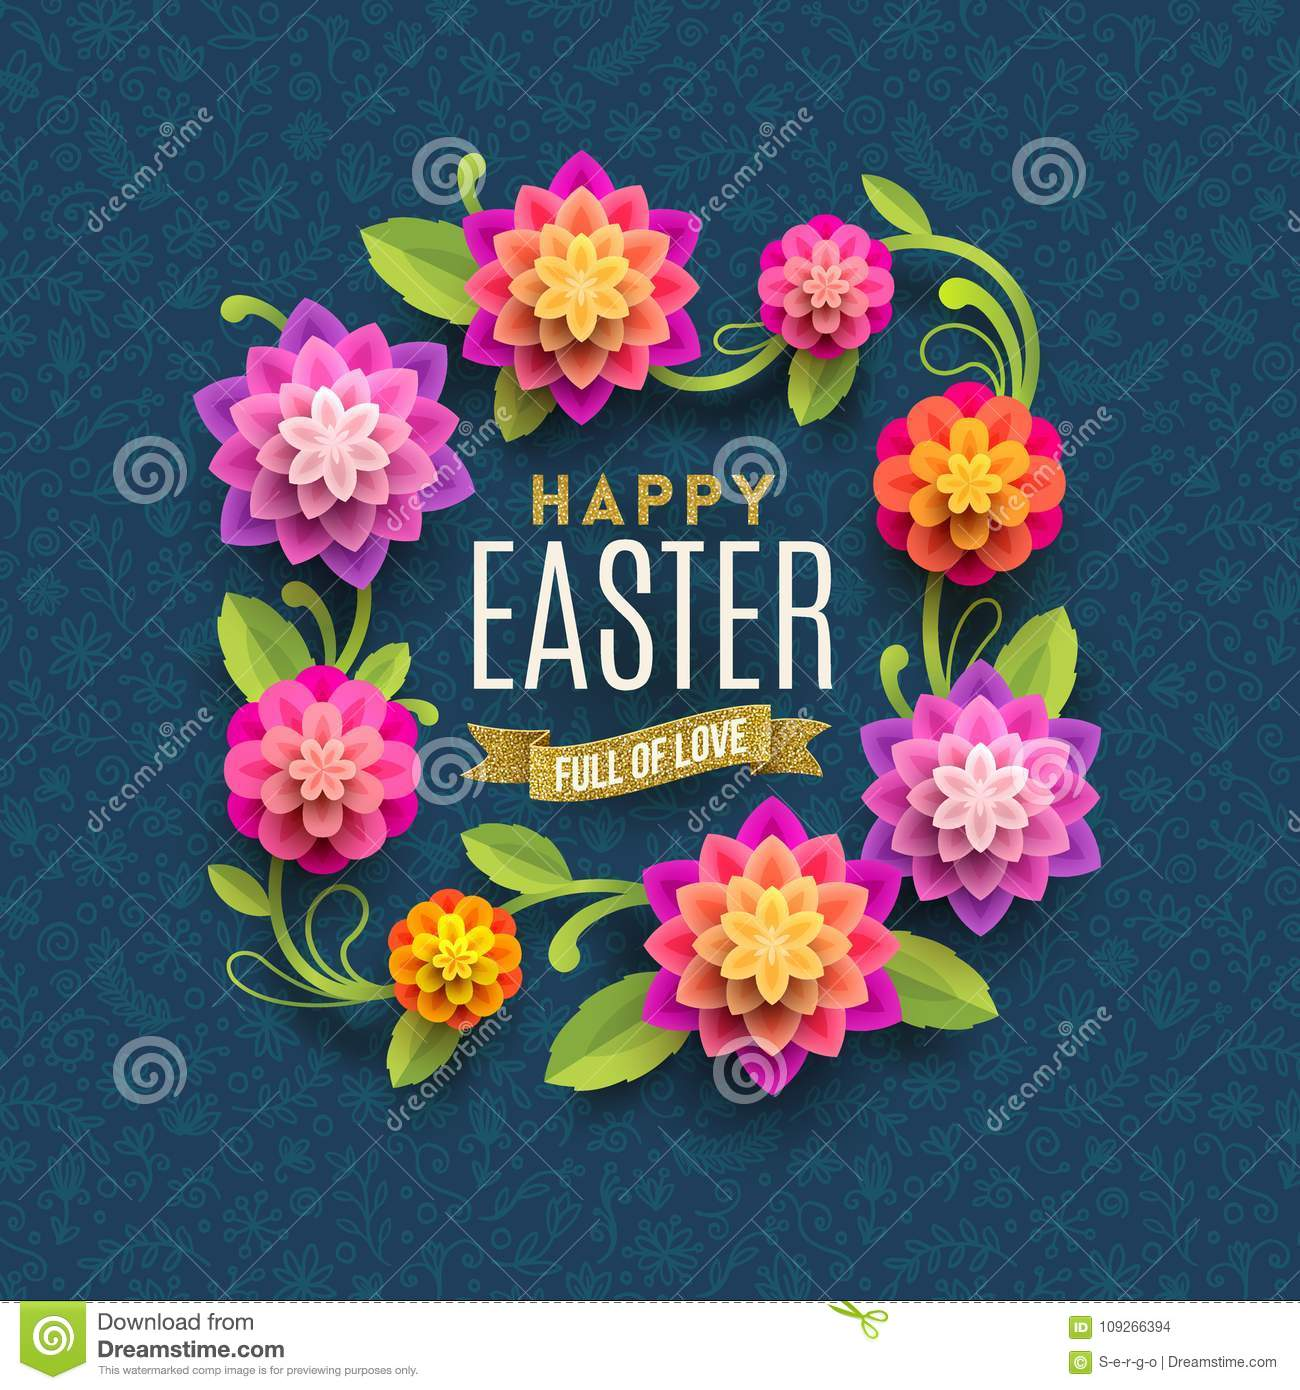 Easter Greeting Card Greeting With Paper Flowers Frame On A Floral